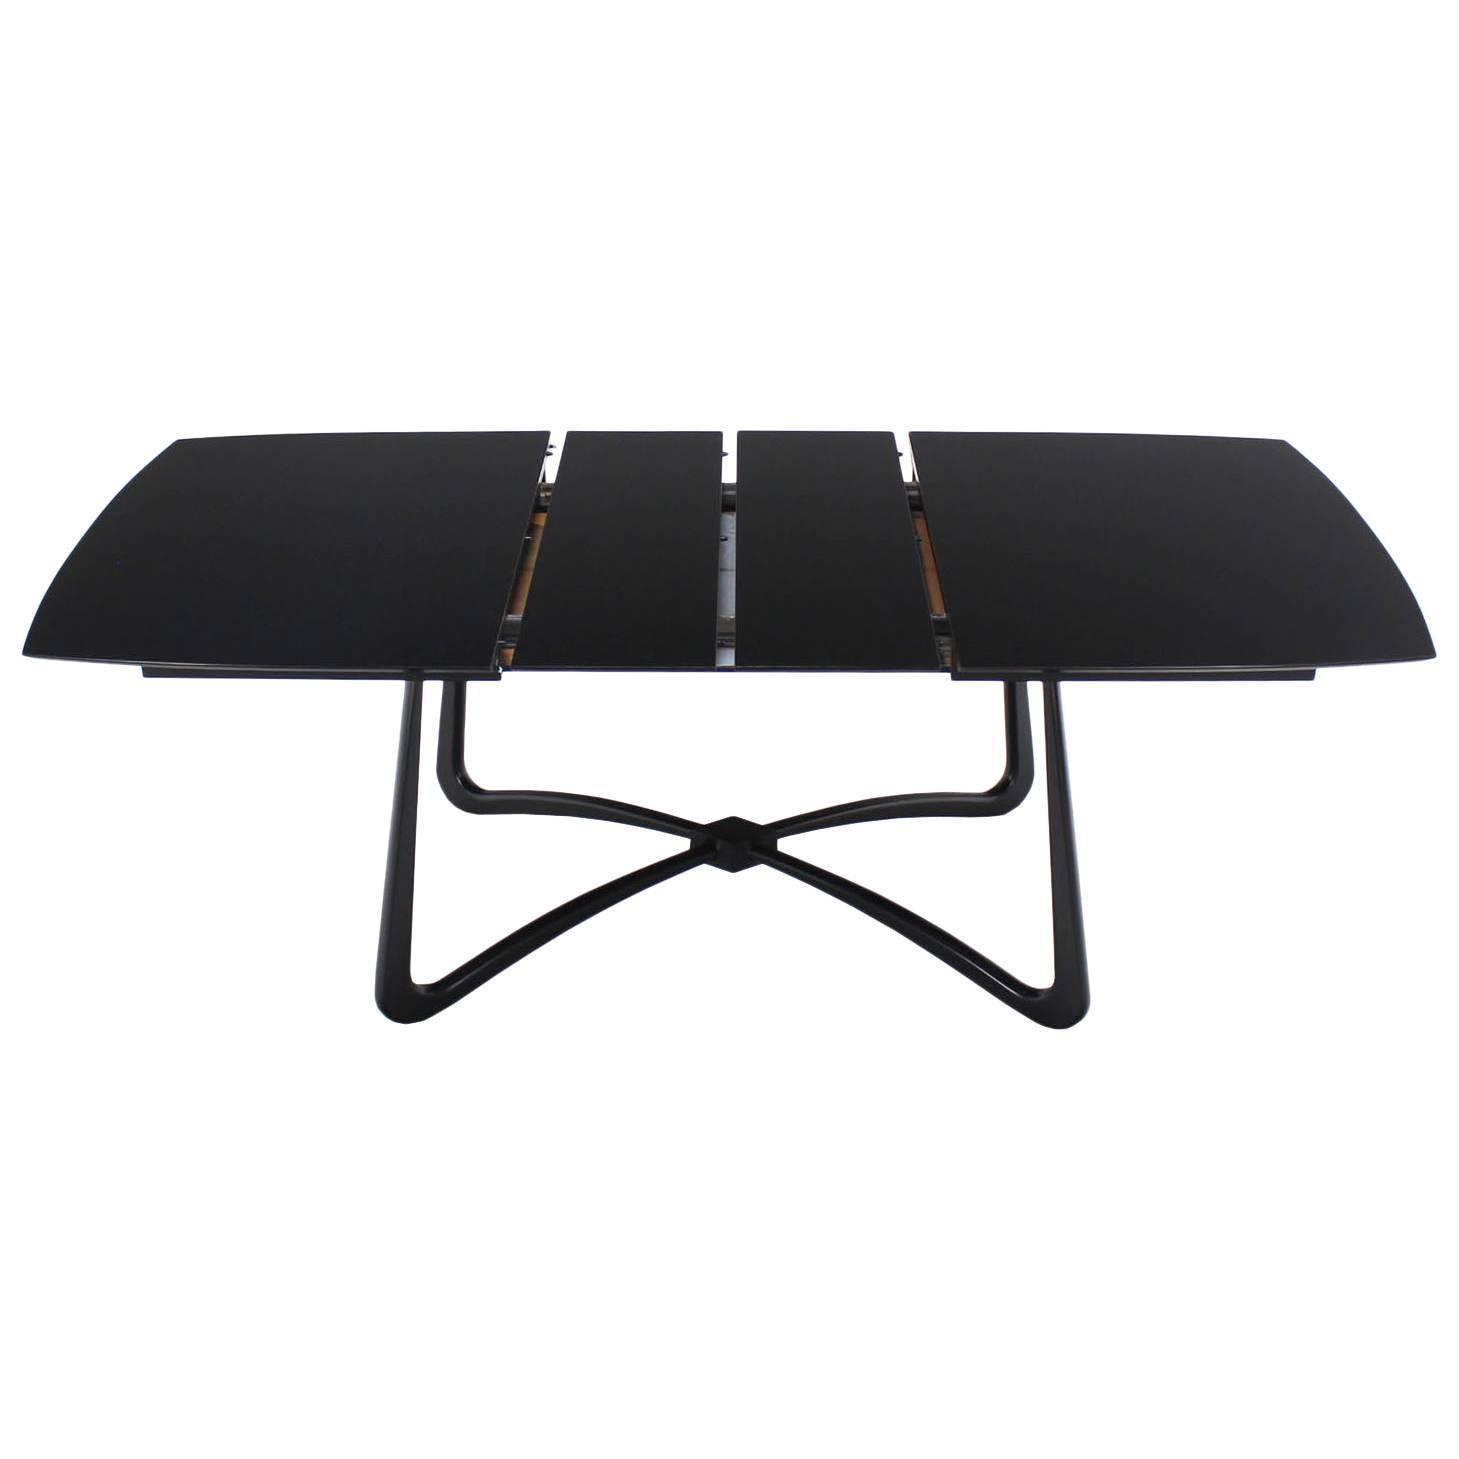 black lacquer mid century modern x base dining table with two leaves